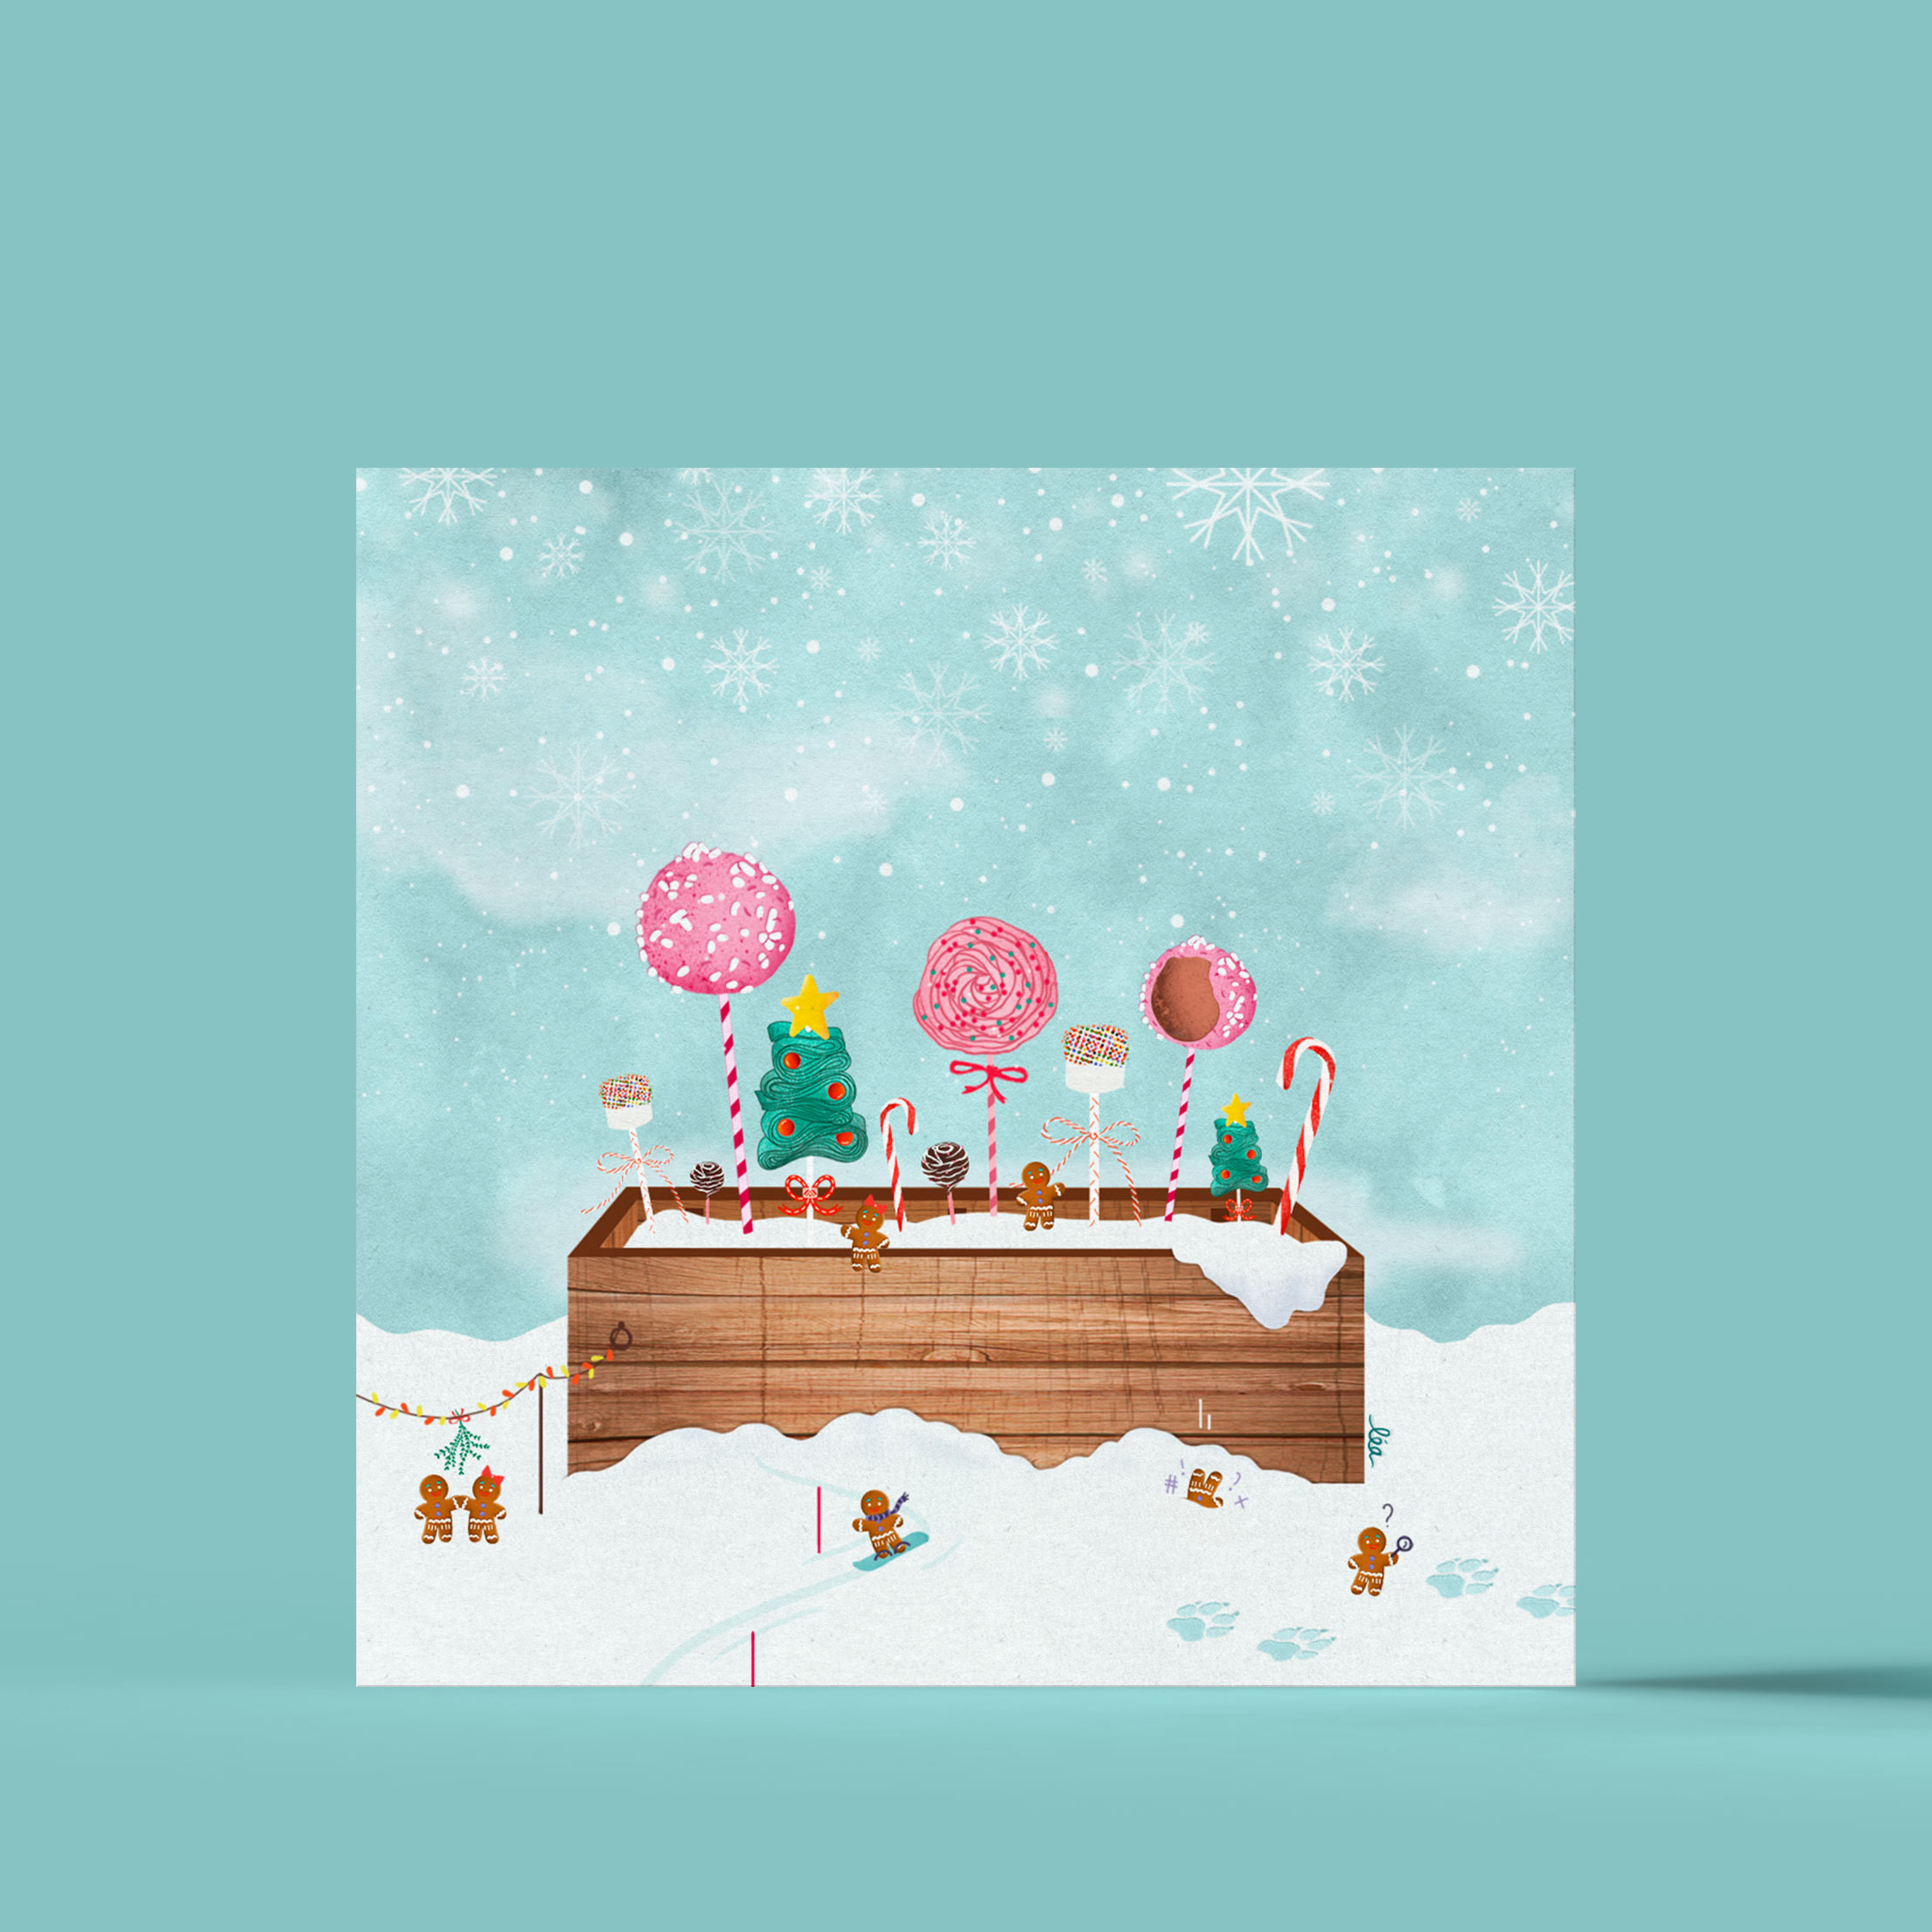 candy flowerpot illustration